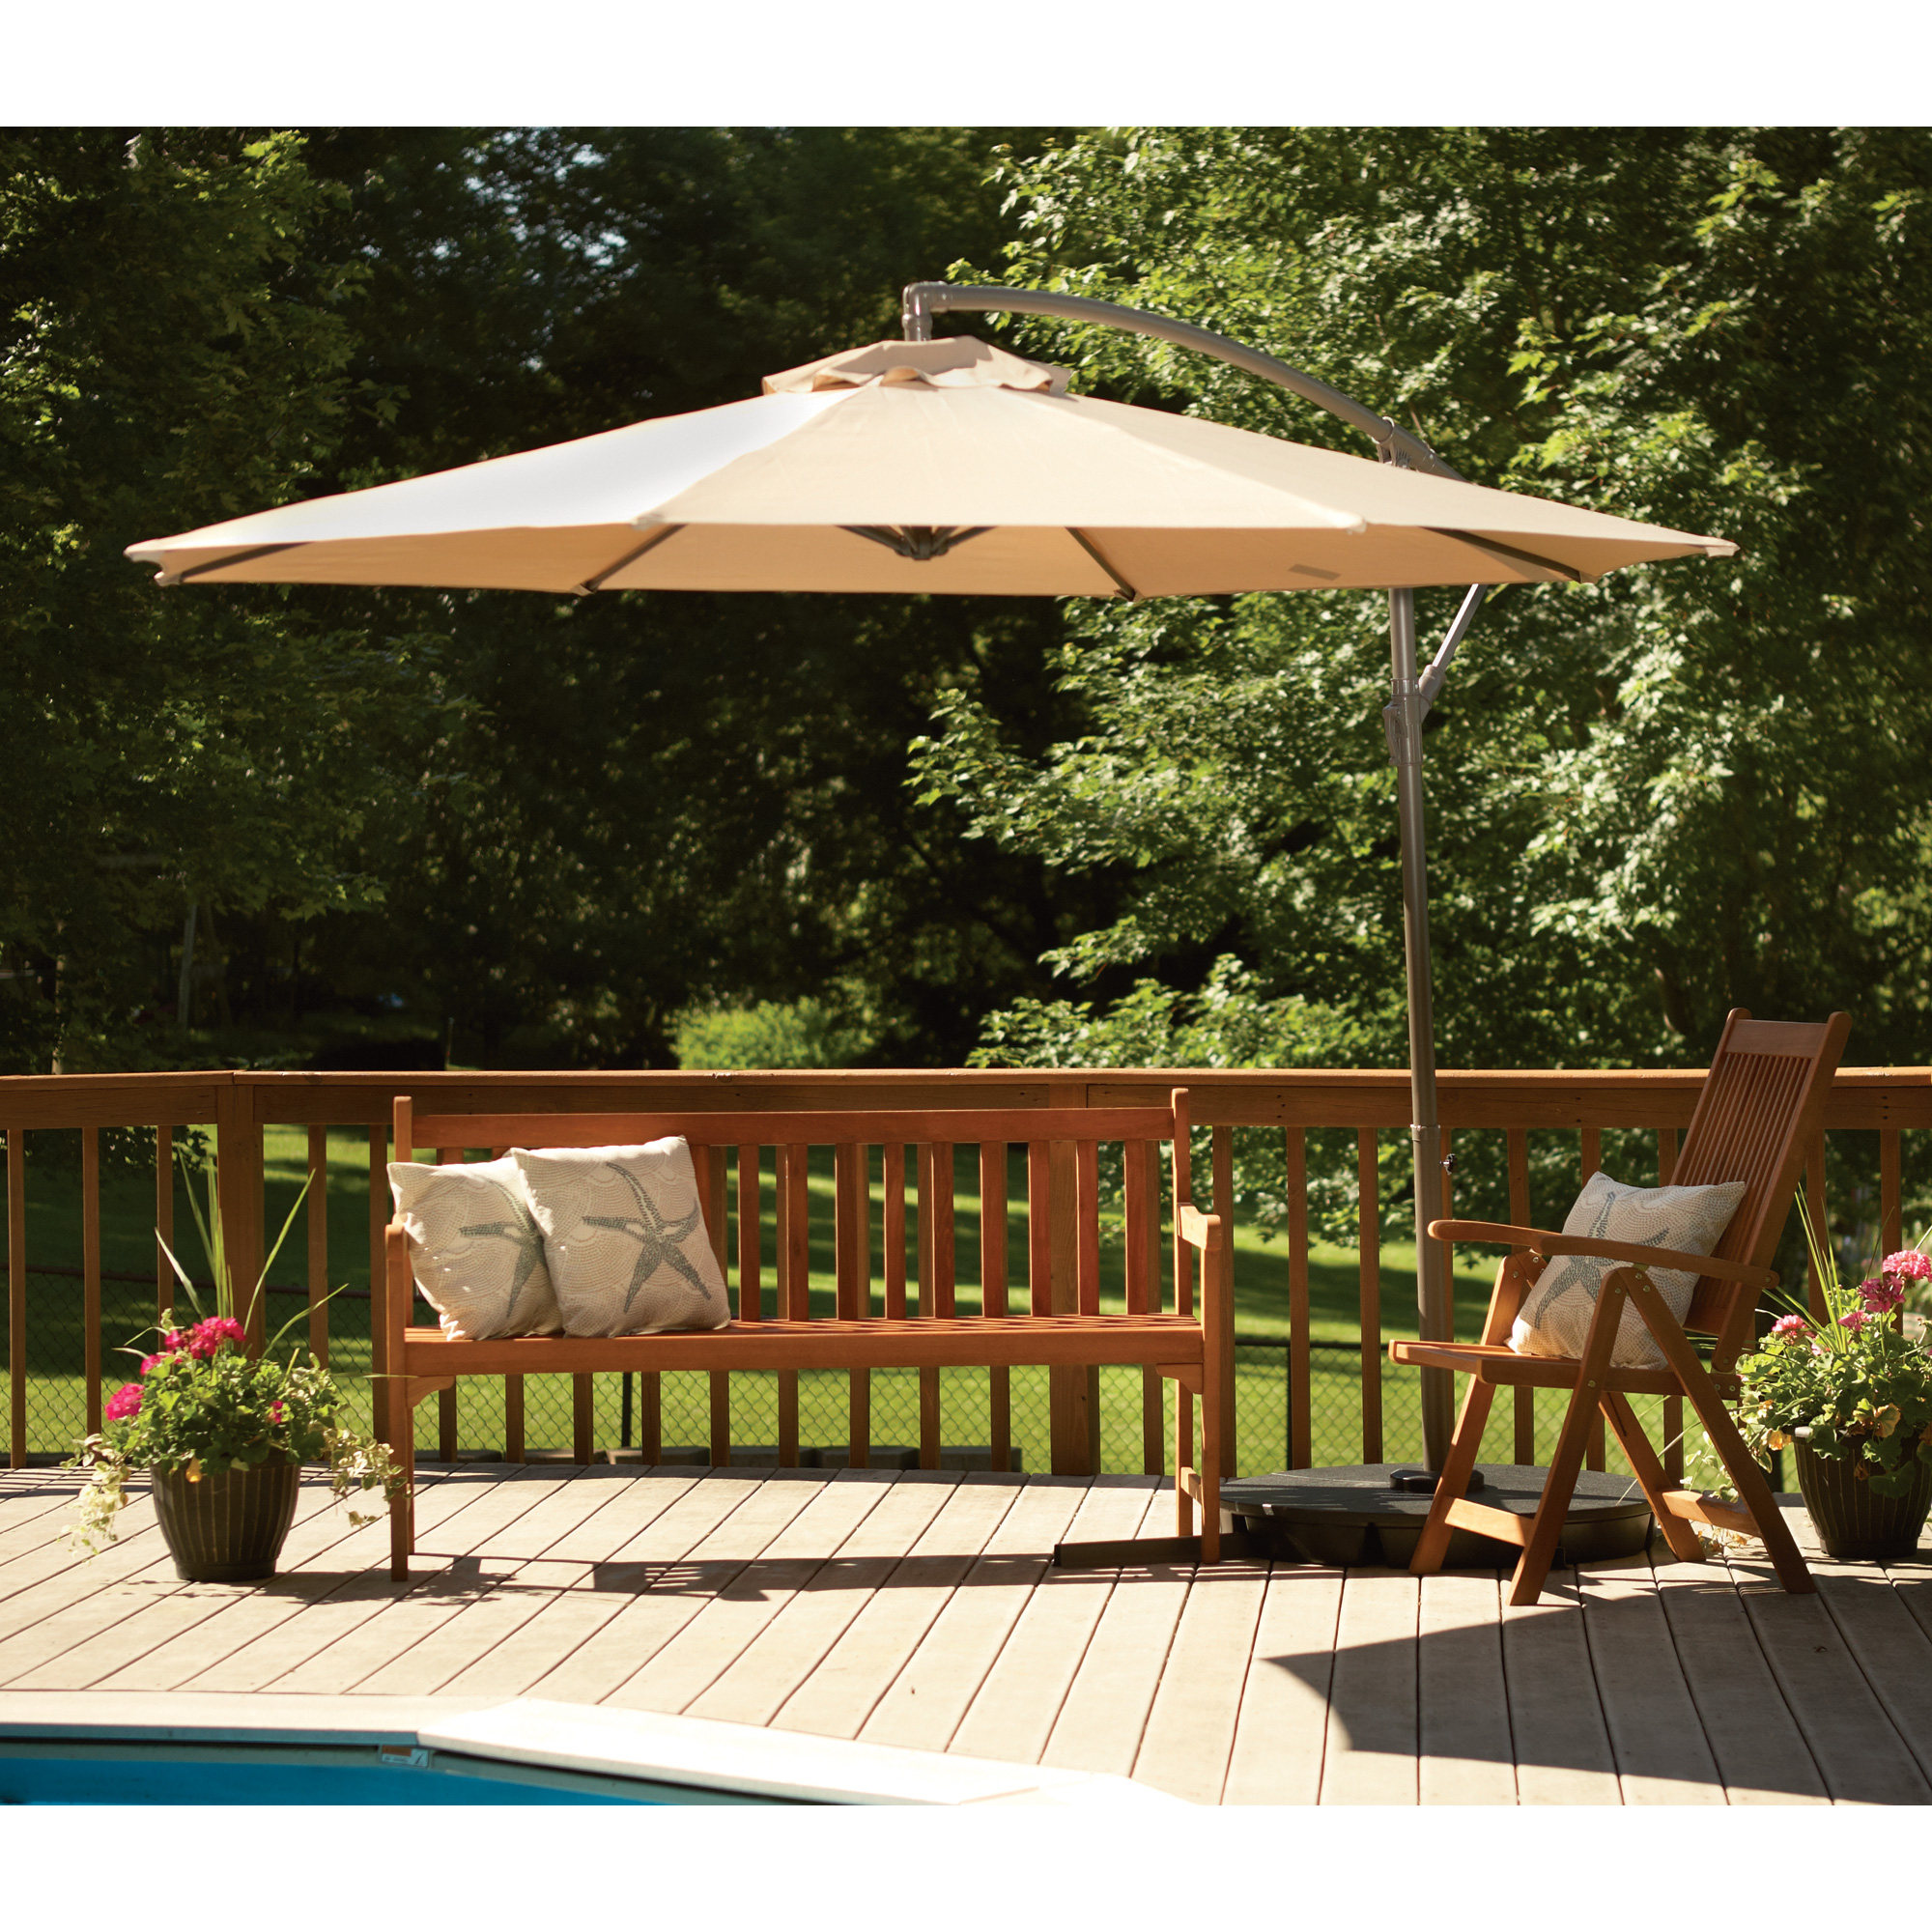 Cheap Patio Furniture Sets Under 200 | 11 Ft Patio Umbrella | Costco Offset Umbrella